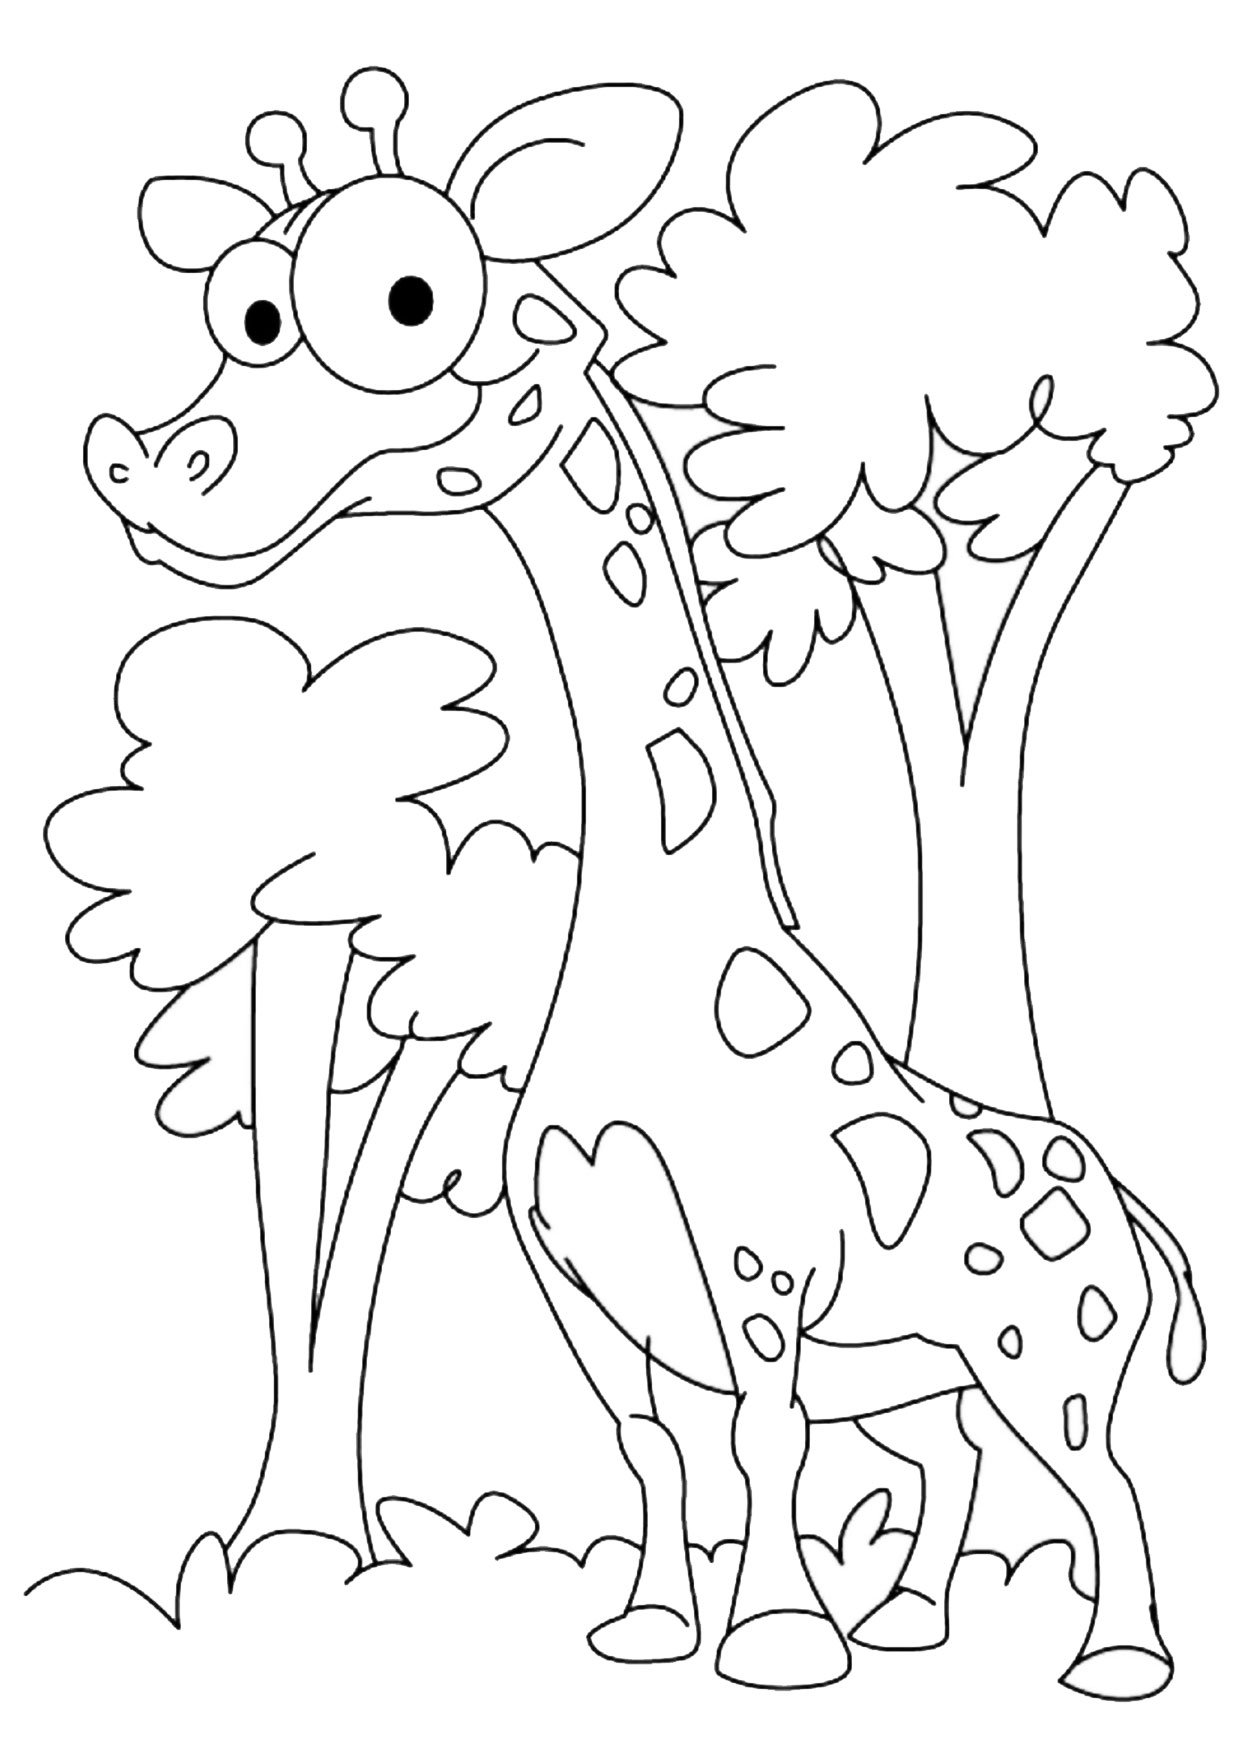 Giraffa in versione cartoon 07